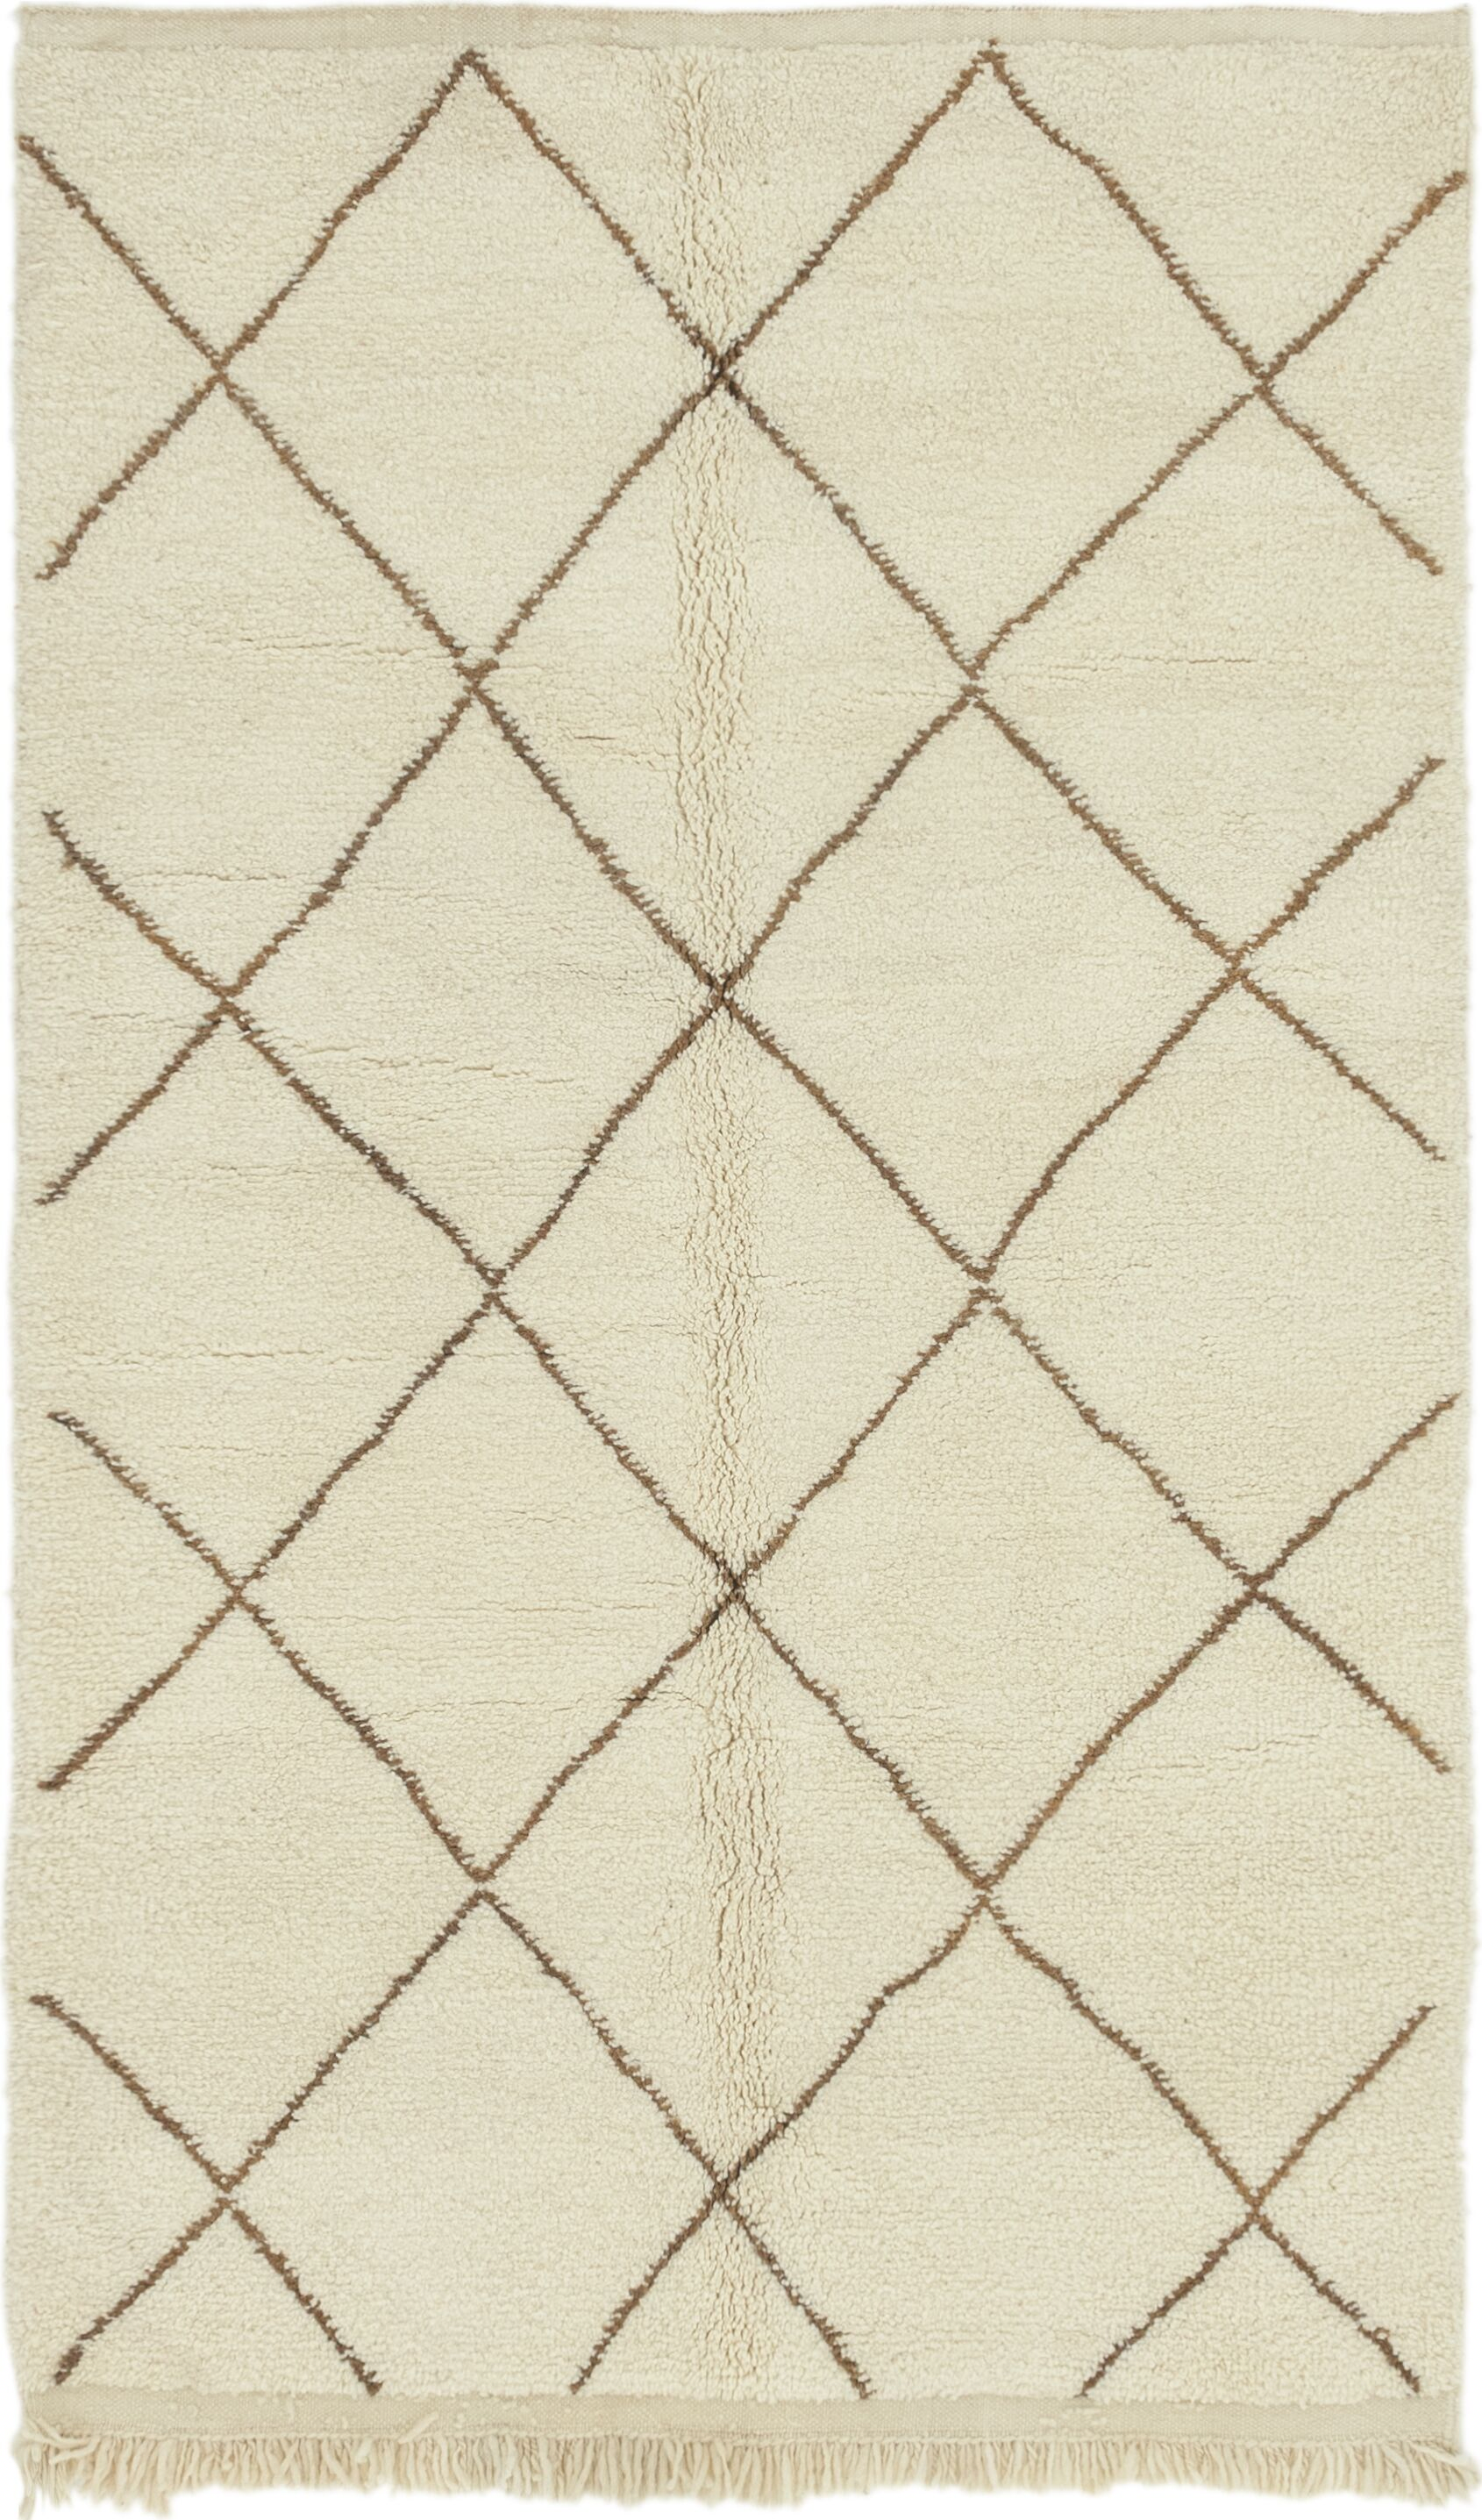 One-of-a-Kind Ilfracombe Hand-Knotted 4'9